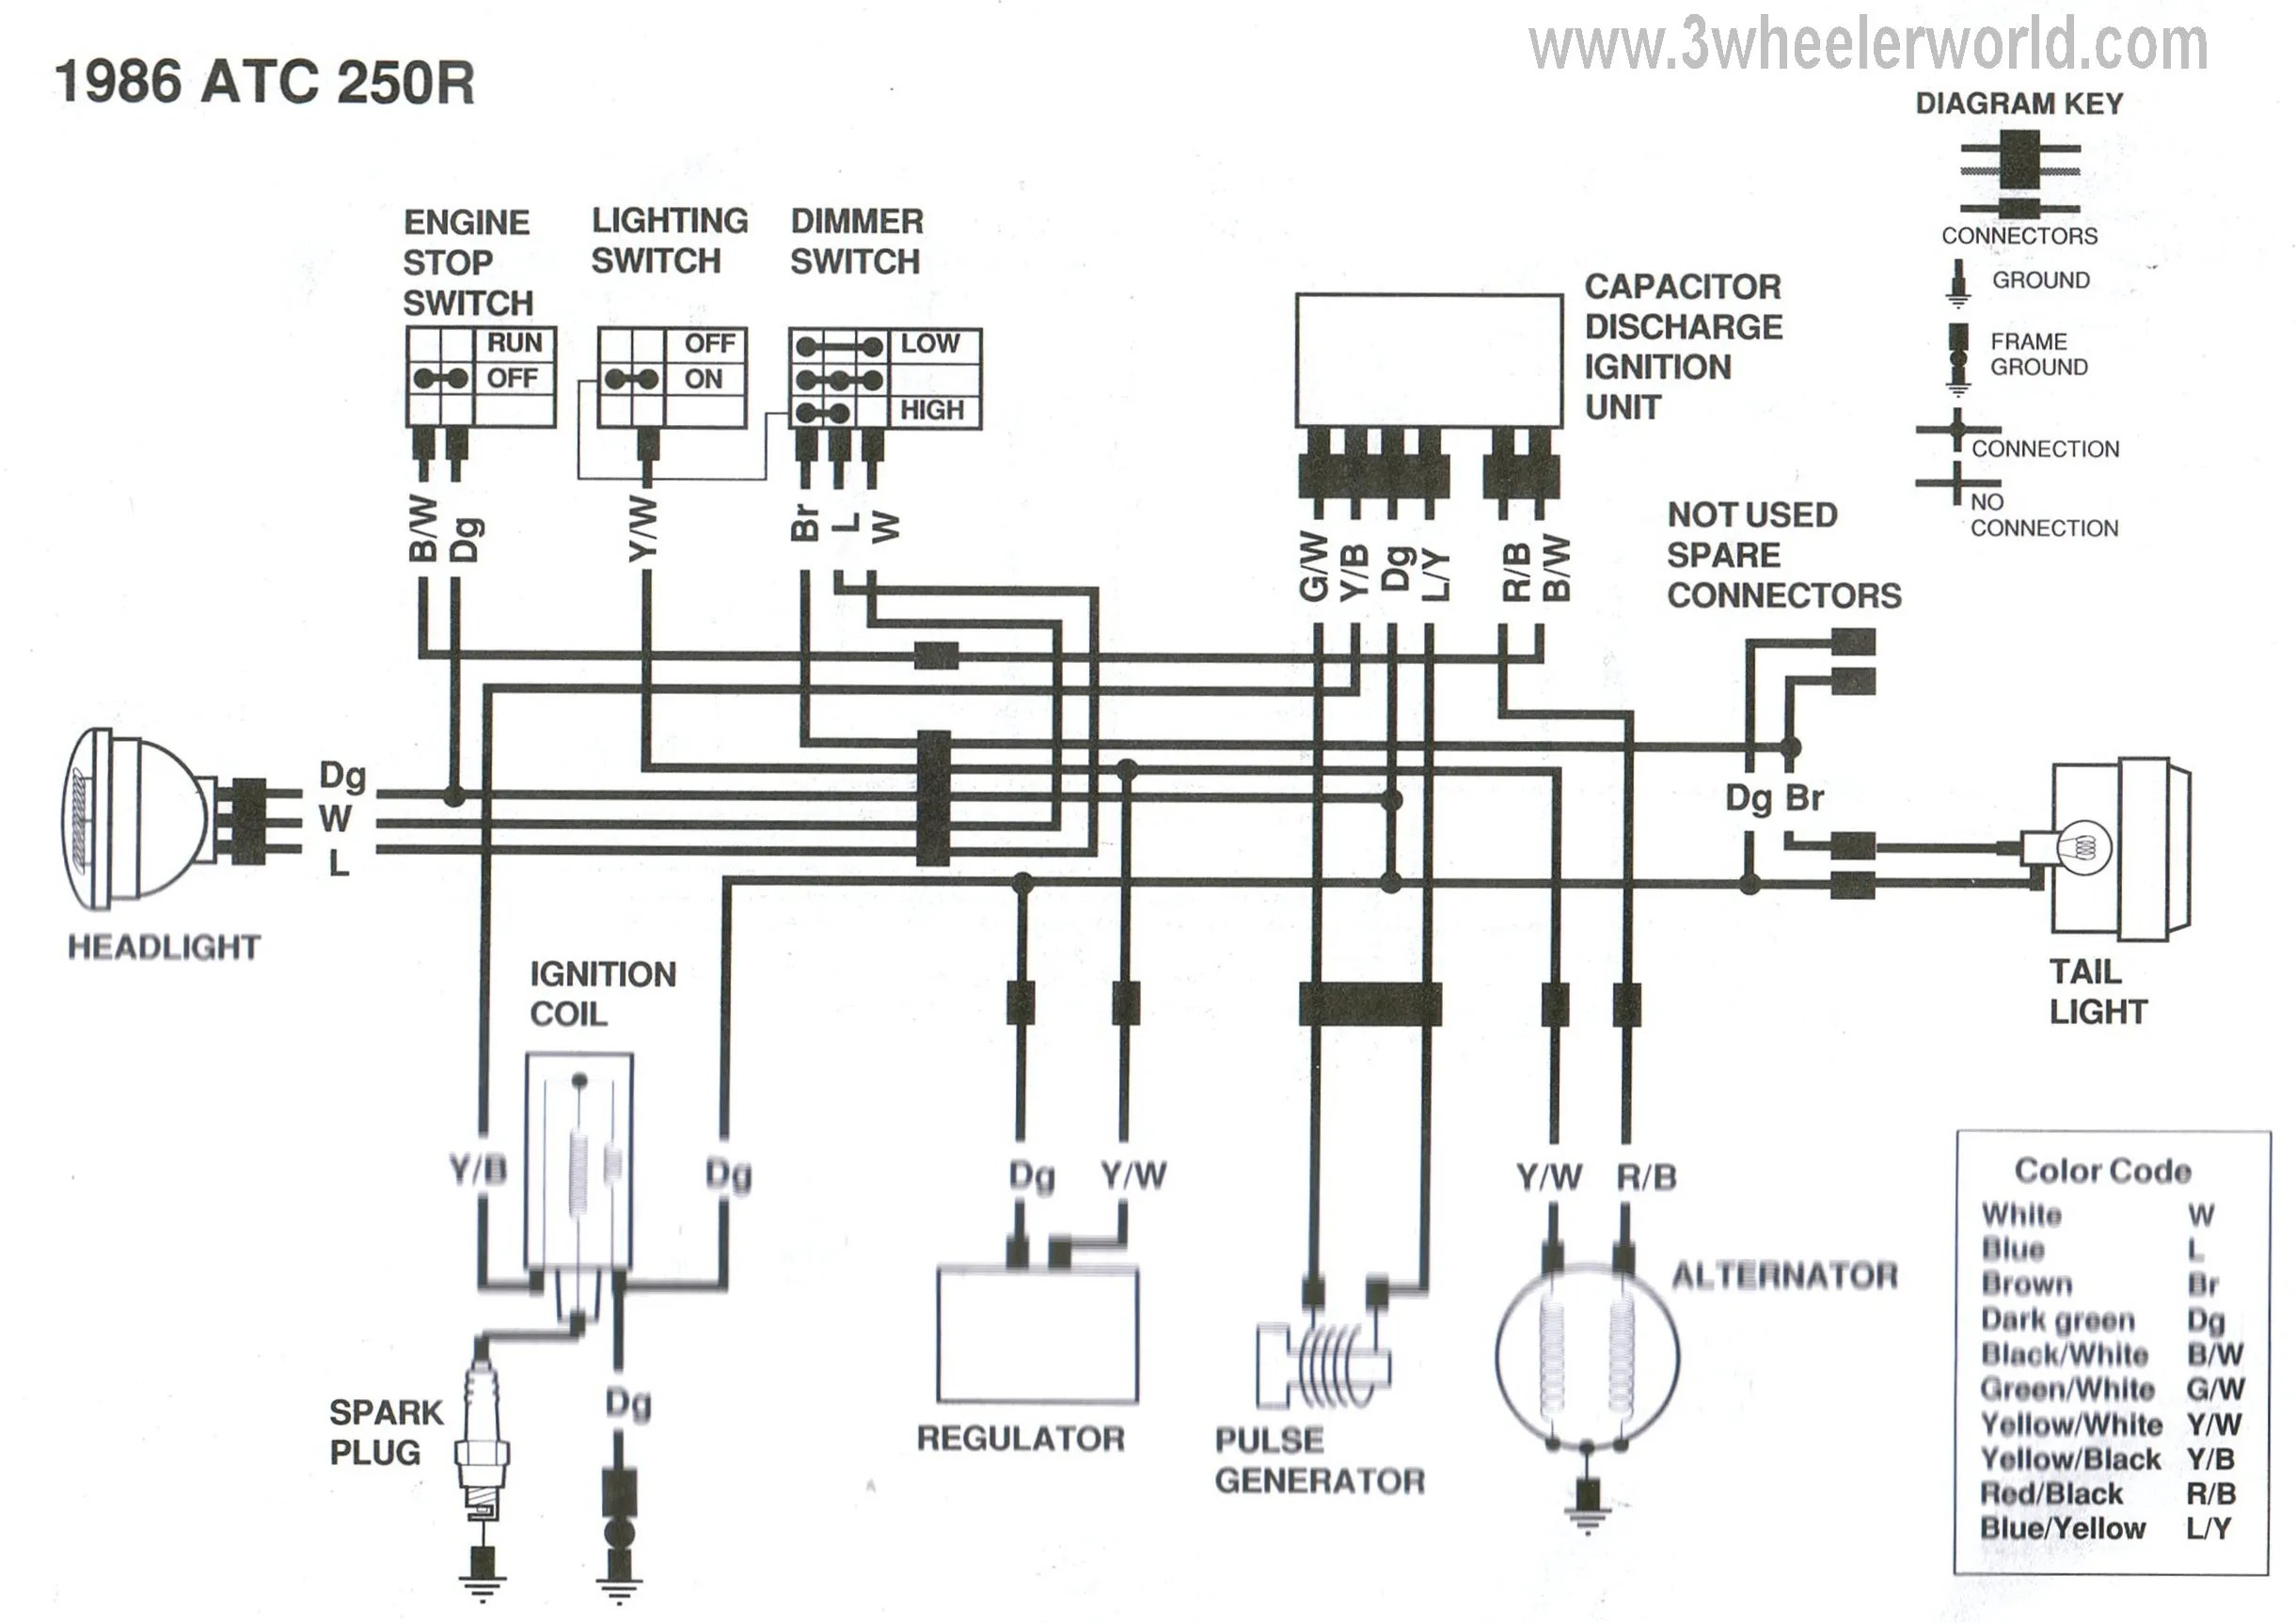 small resolution of headlight wiring diagram atc70 30 wiring diagram images wiring headlight wiring upgrade diagram headlight wiring diagram